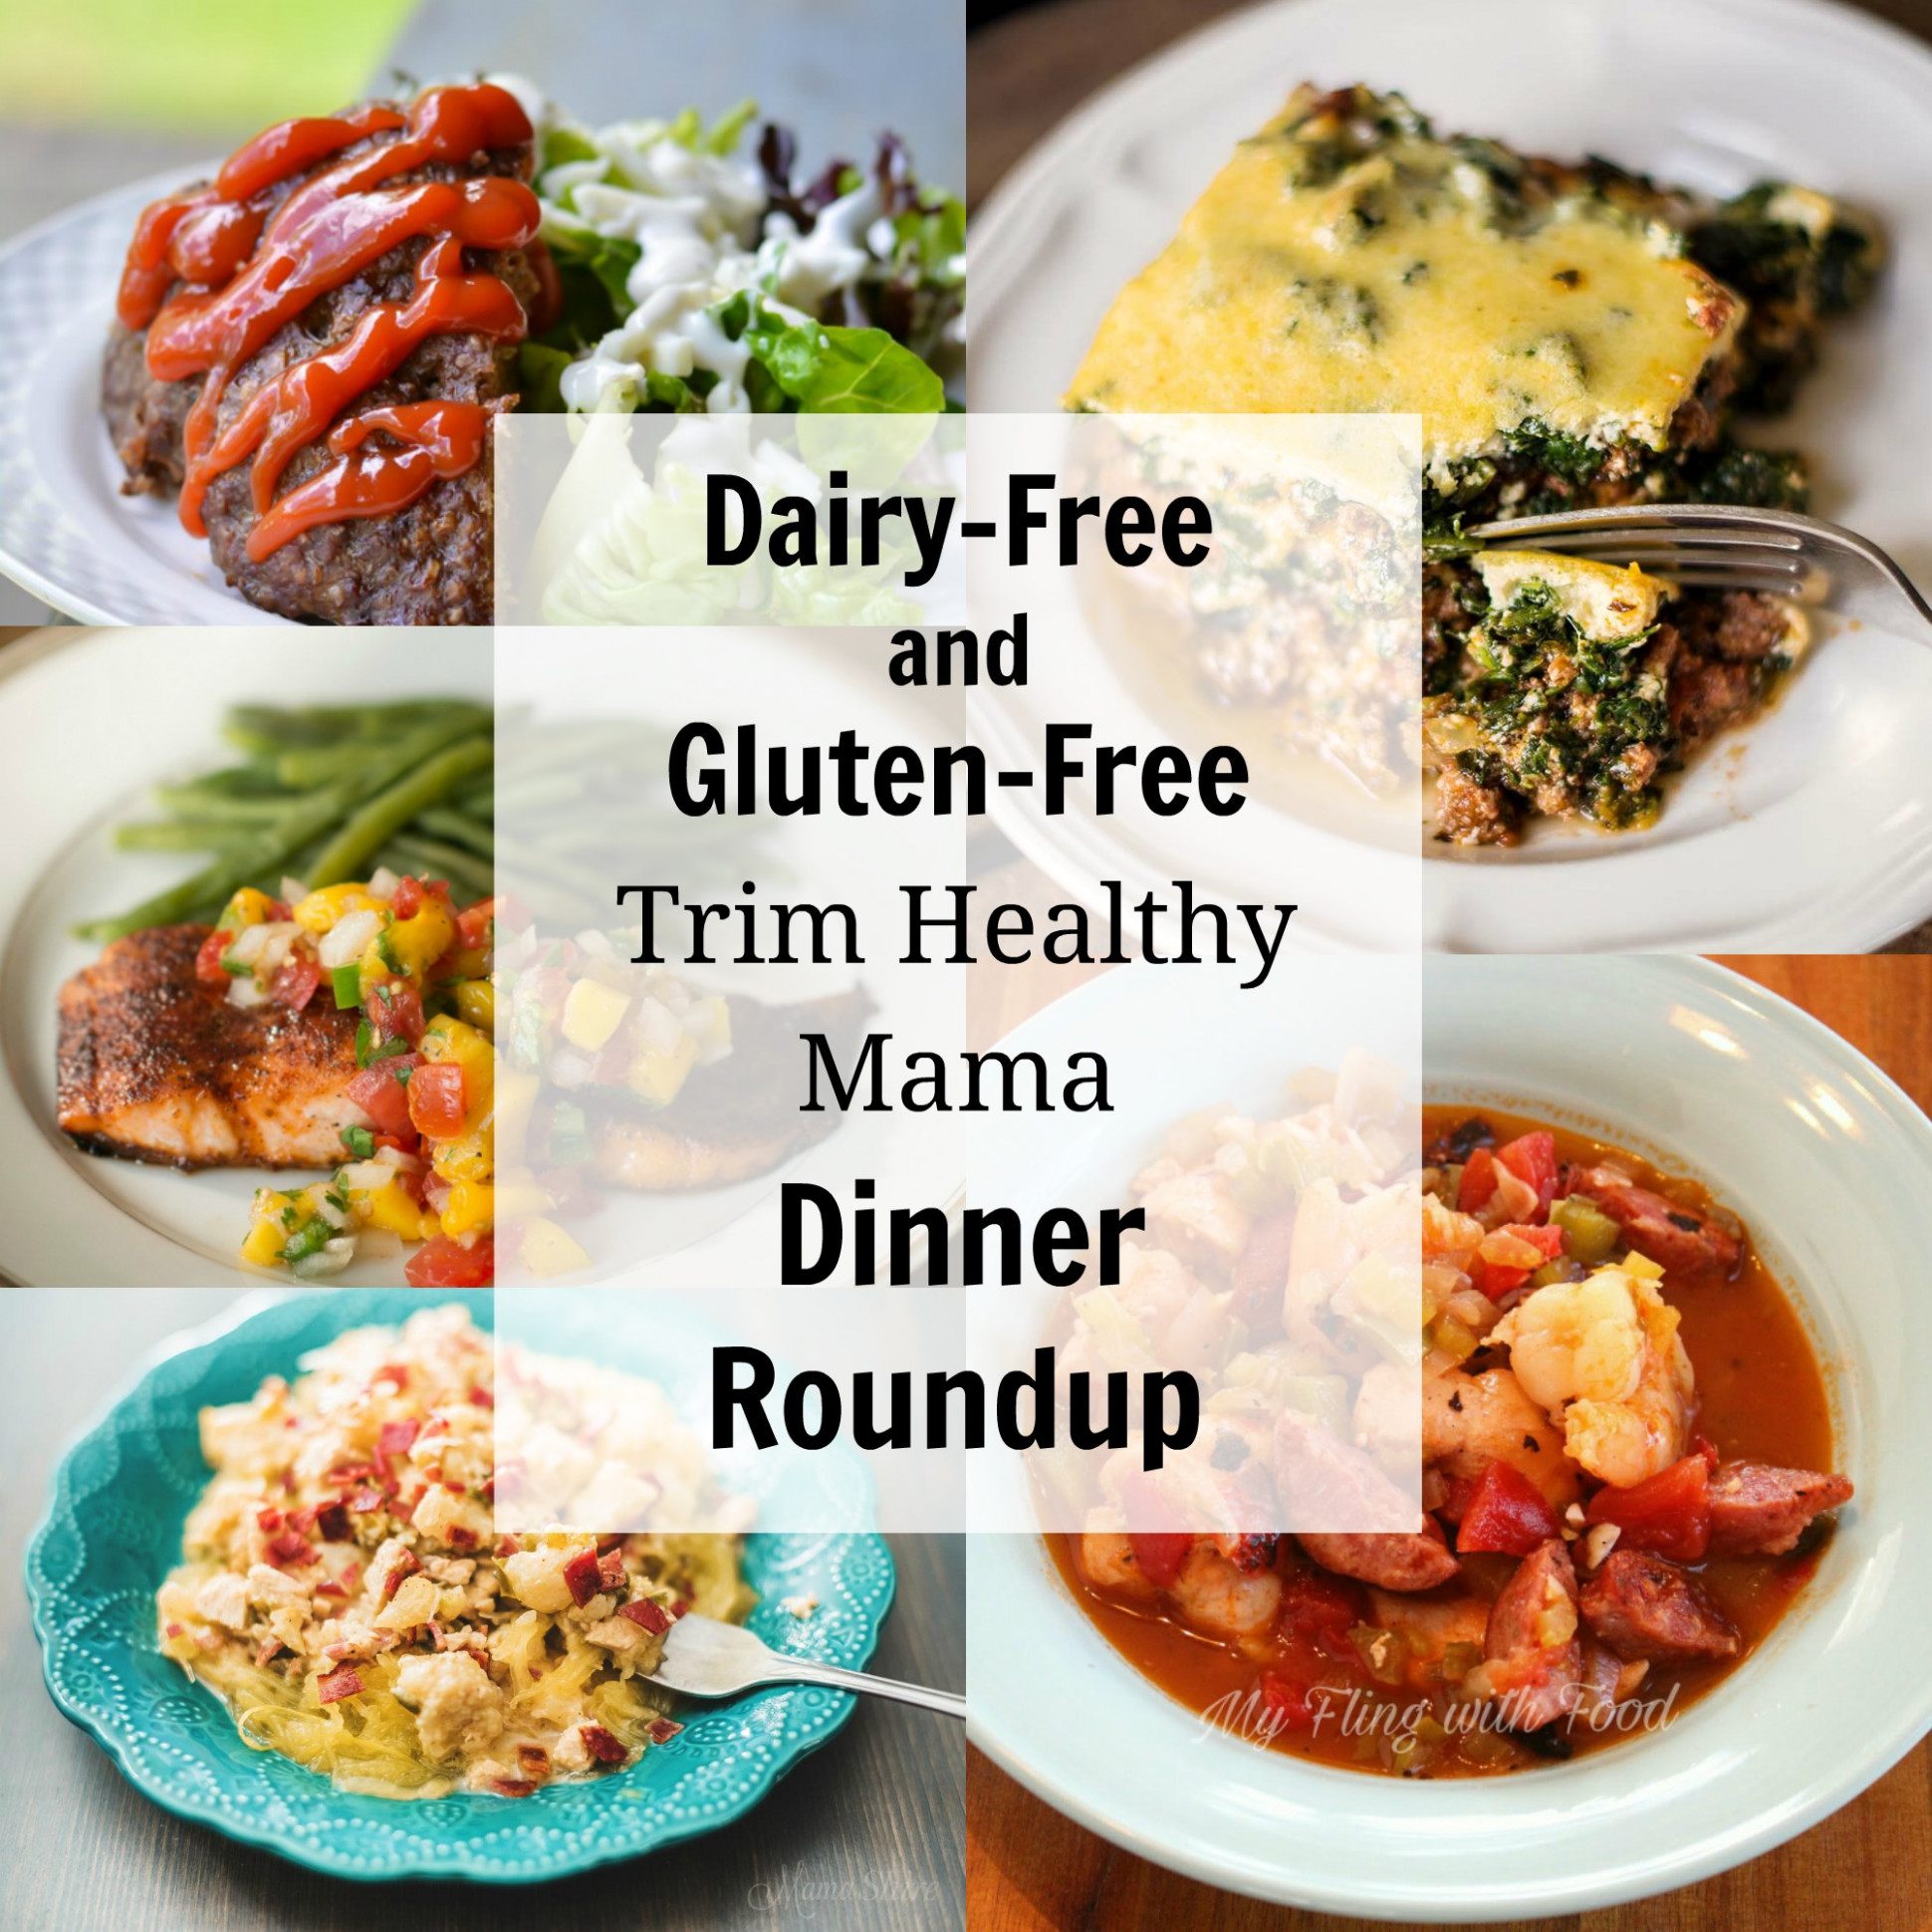 Dairy-Free and Gluten-Free Trim Healthy Mama Dinners - MamaShire - trim healthy mama recipes